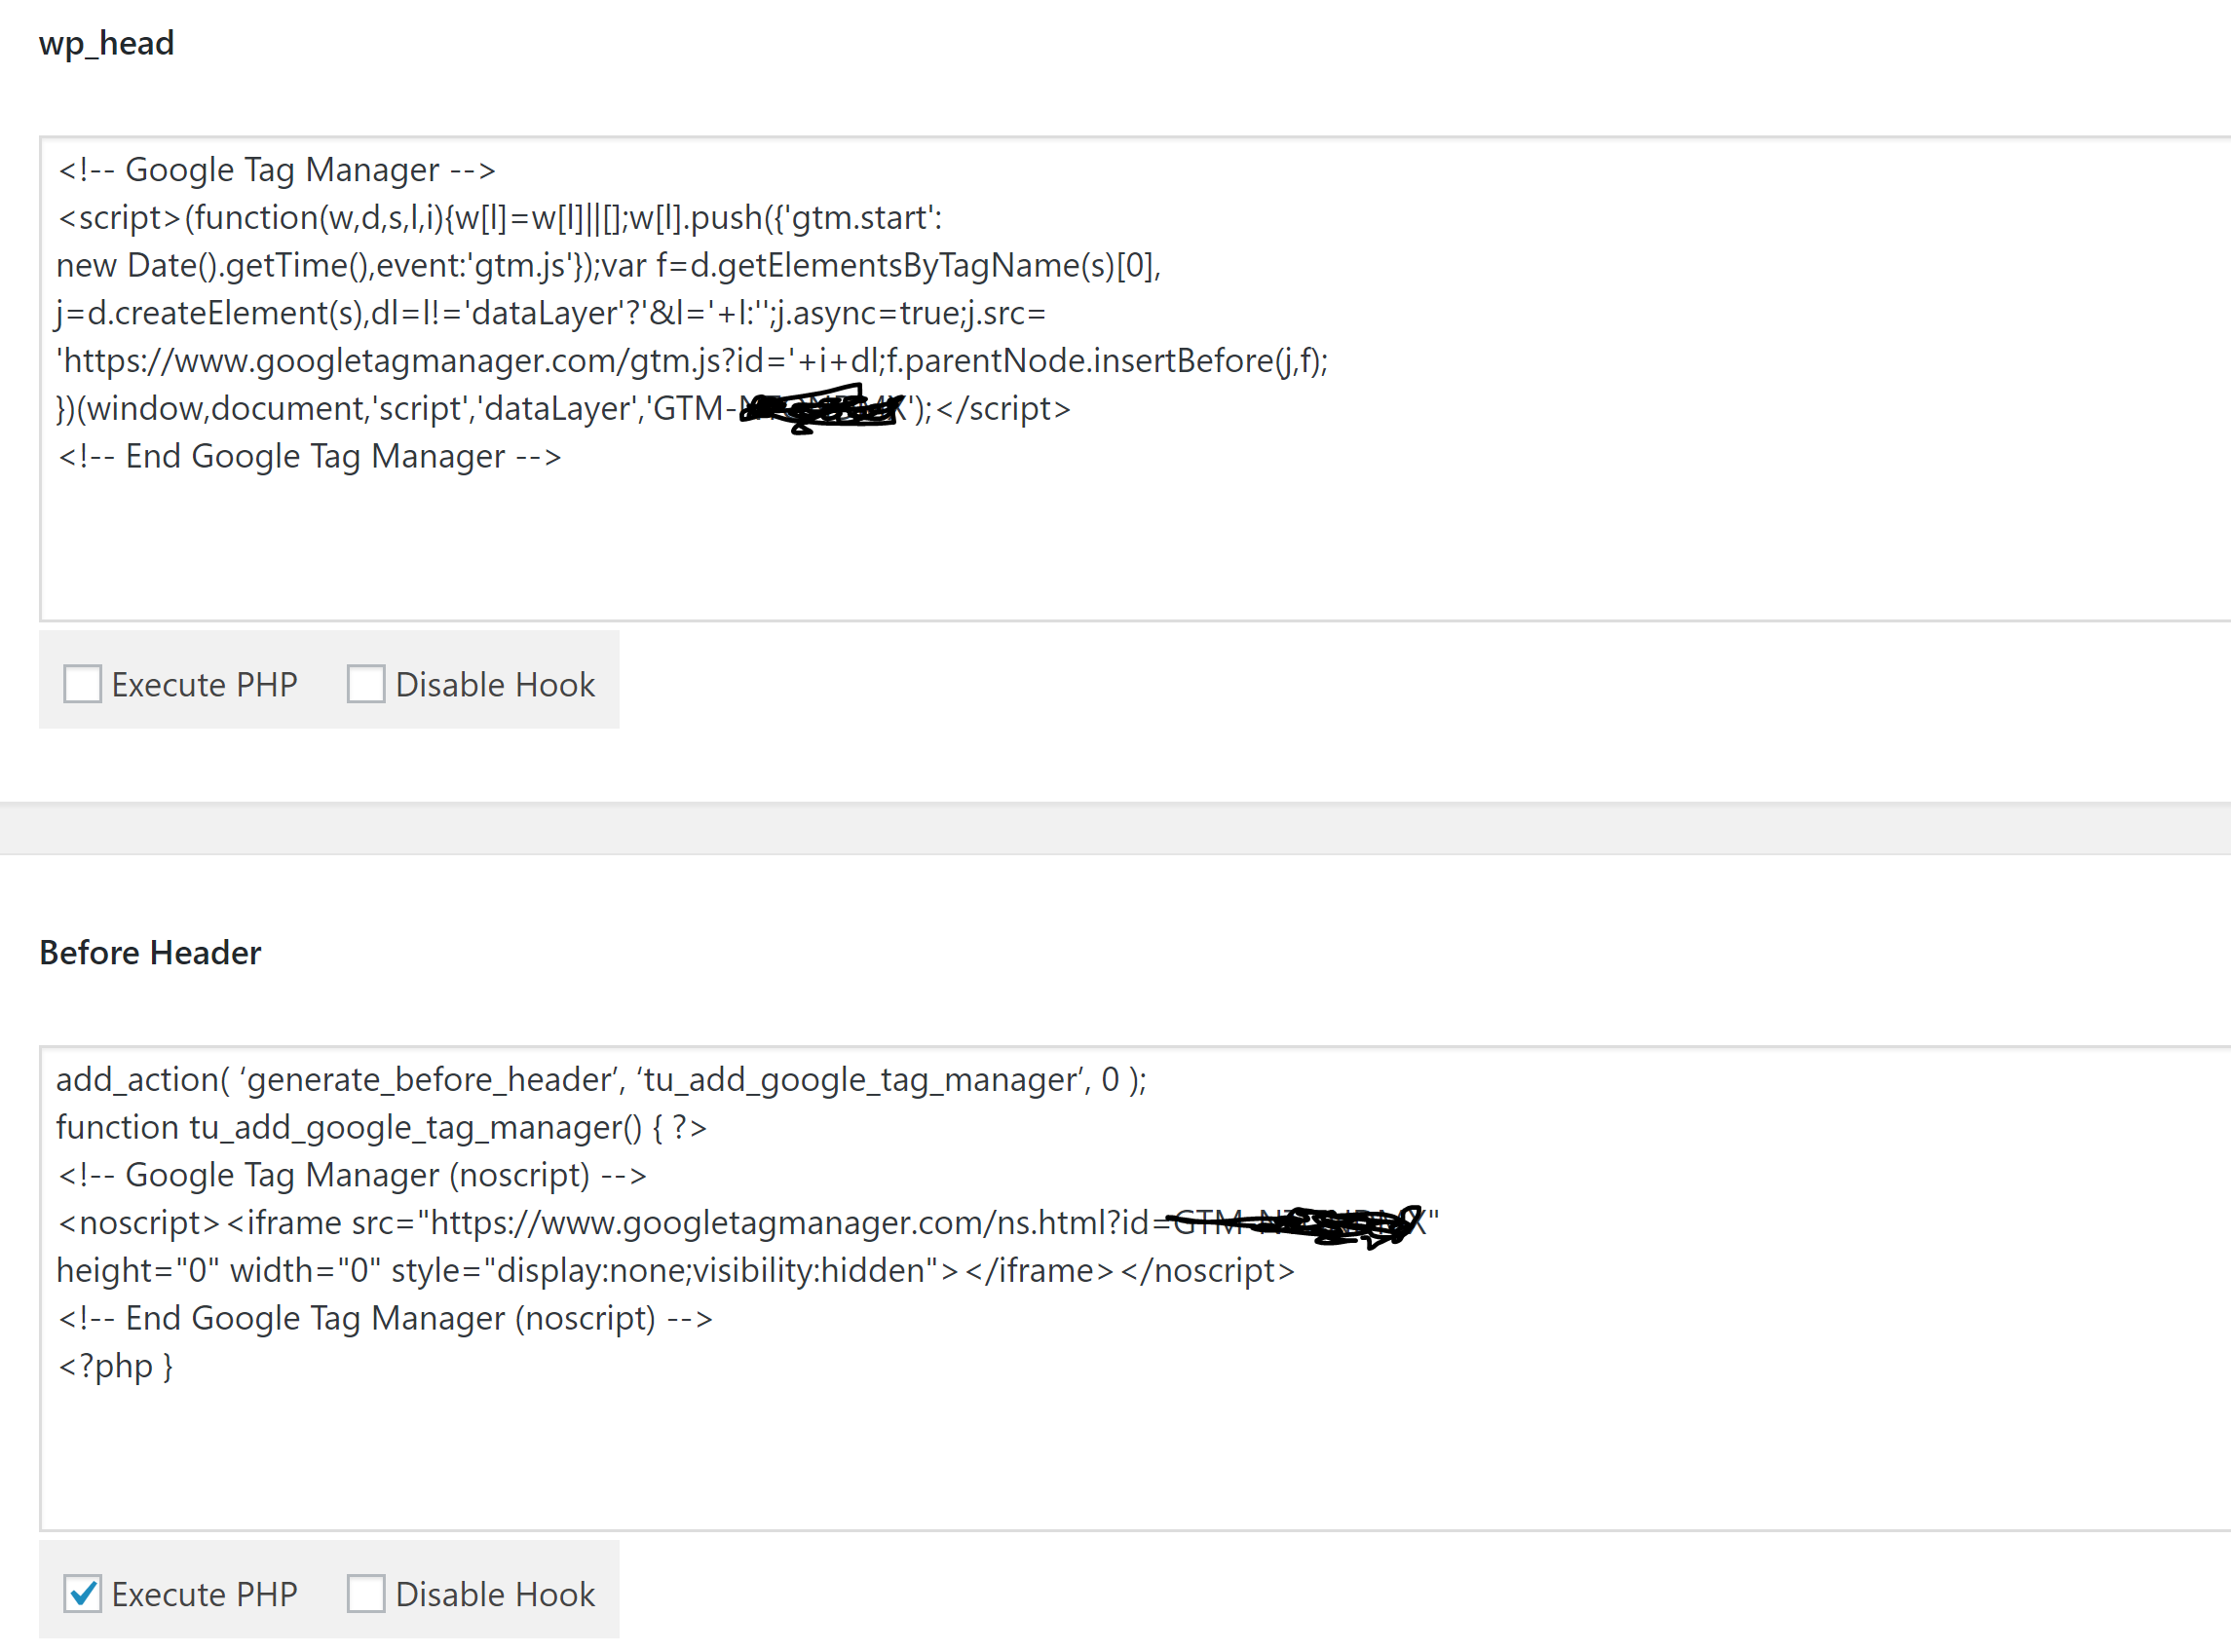 google tag manager code in hooks section